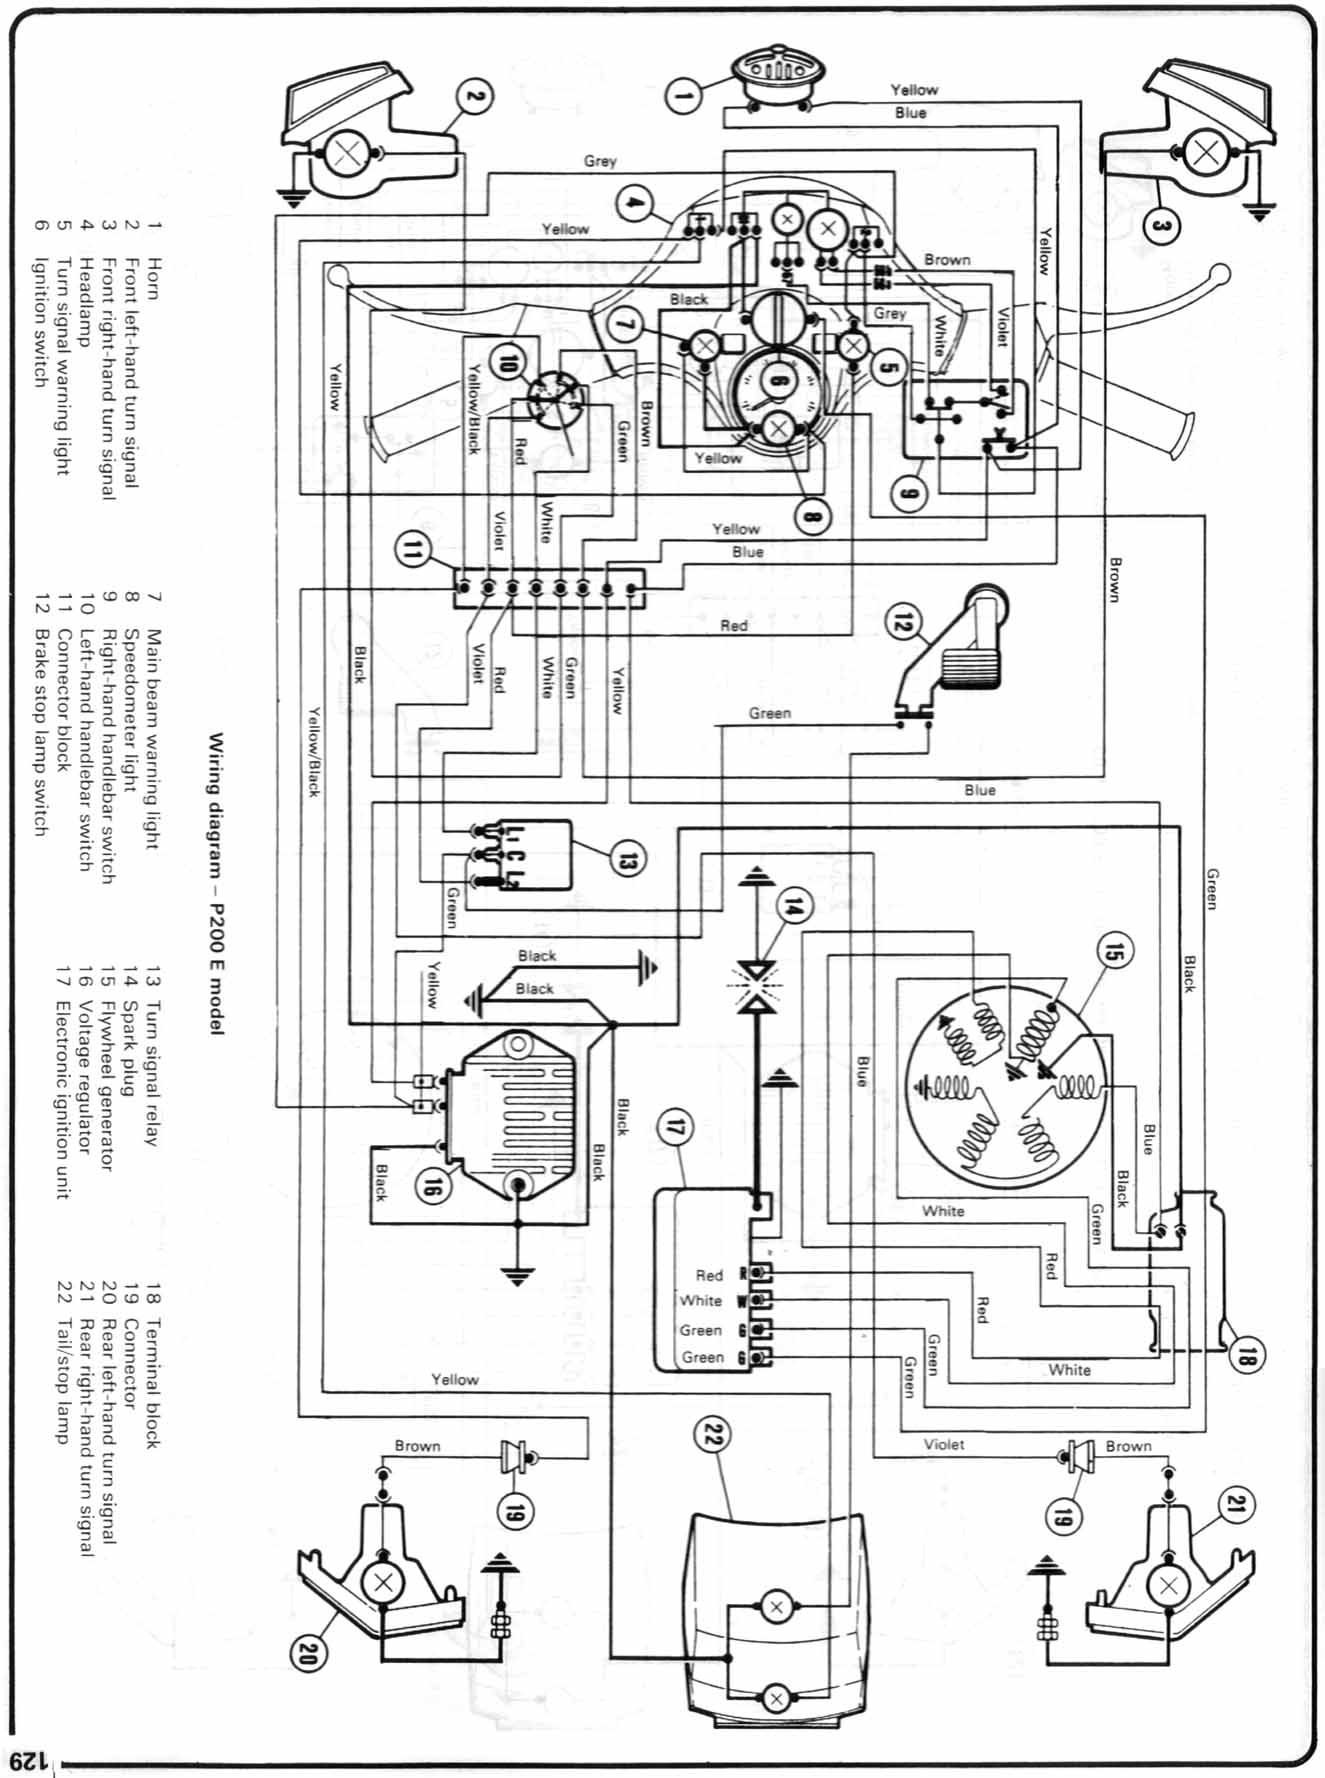 1979 Vespa Px200 Fuse Box - Ford 460 Starter Solenoid Wiring Diagram for  Wiring Diagram Schematics | 1979 Vespa Px200 Fuse Box |  | Wiring Diagram Schematics